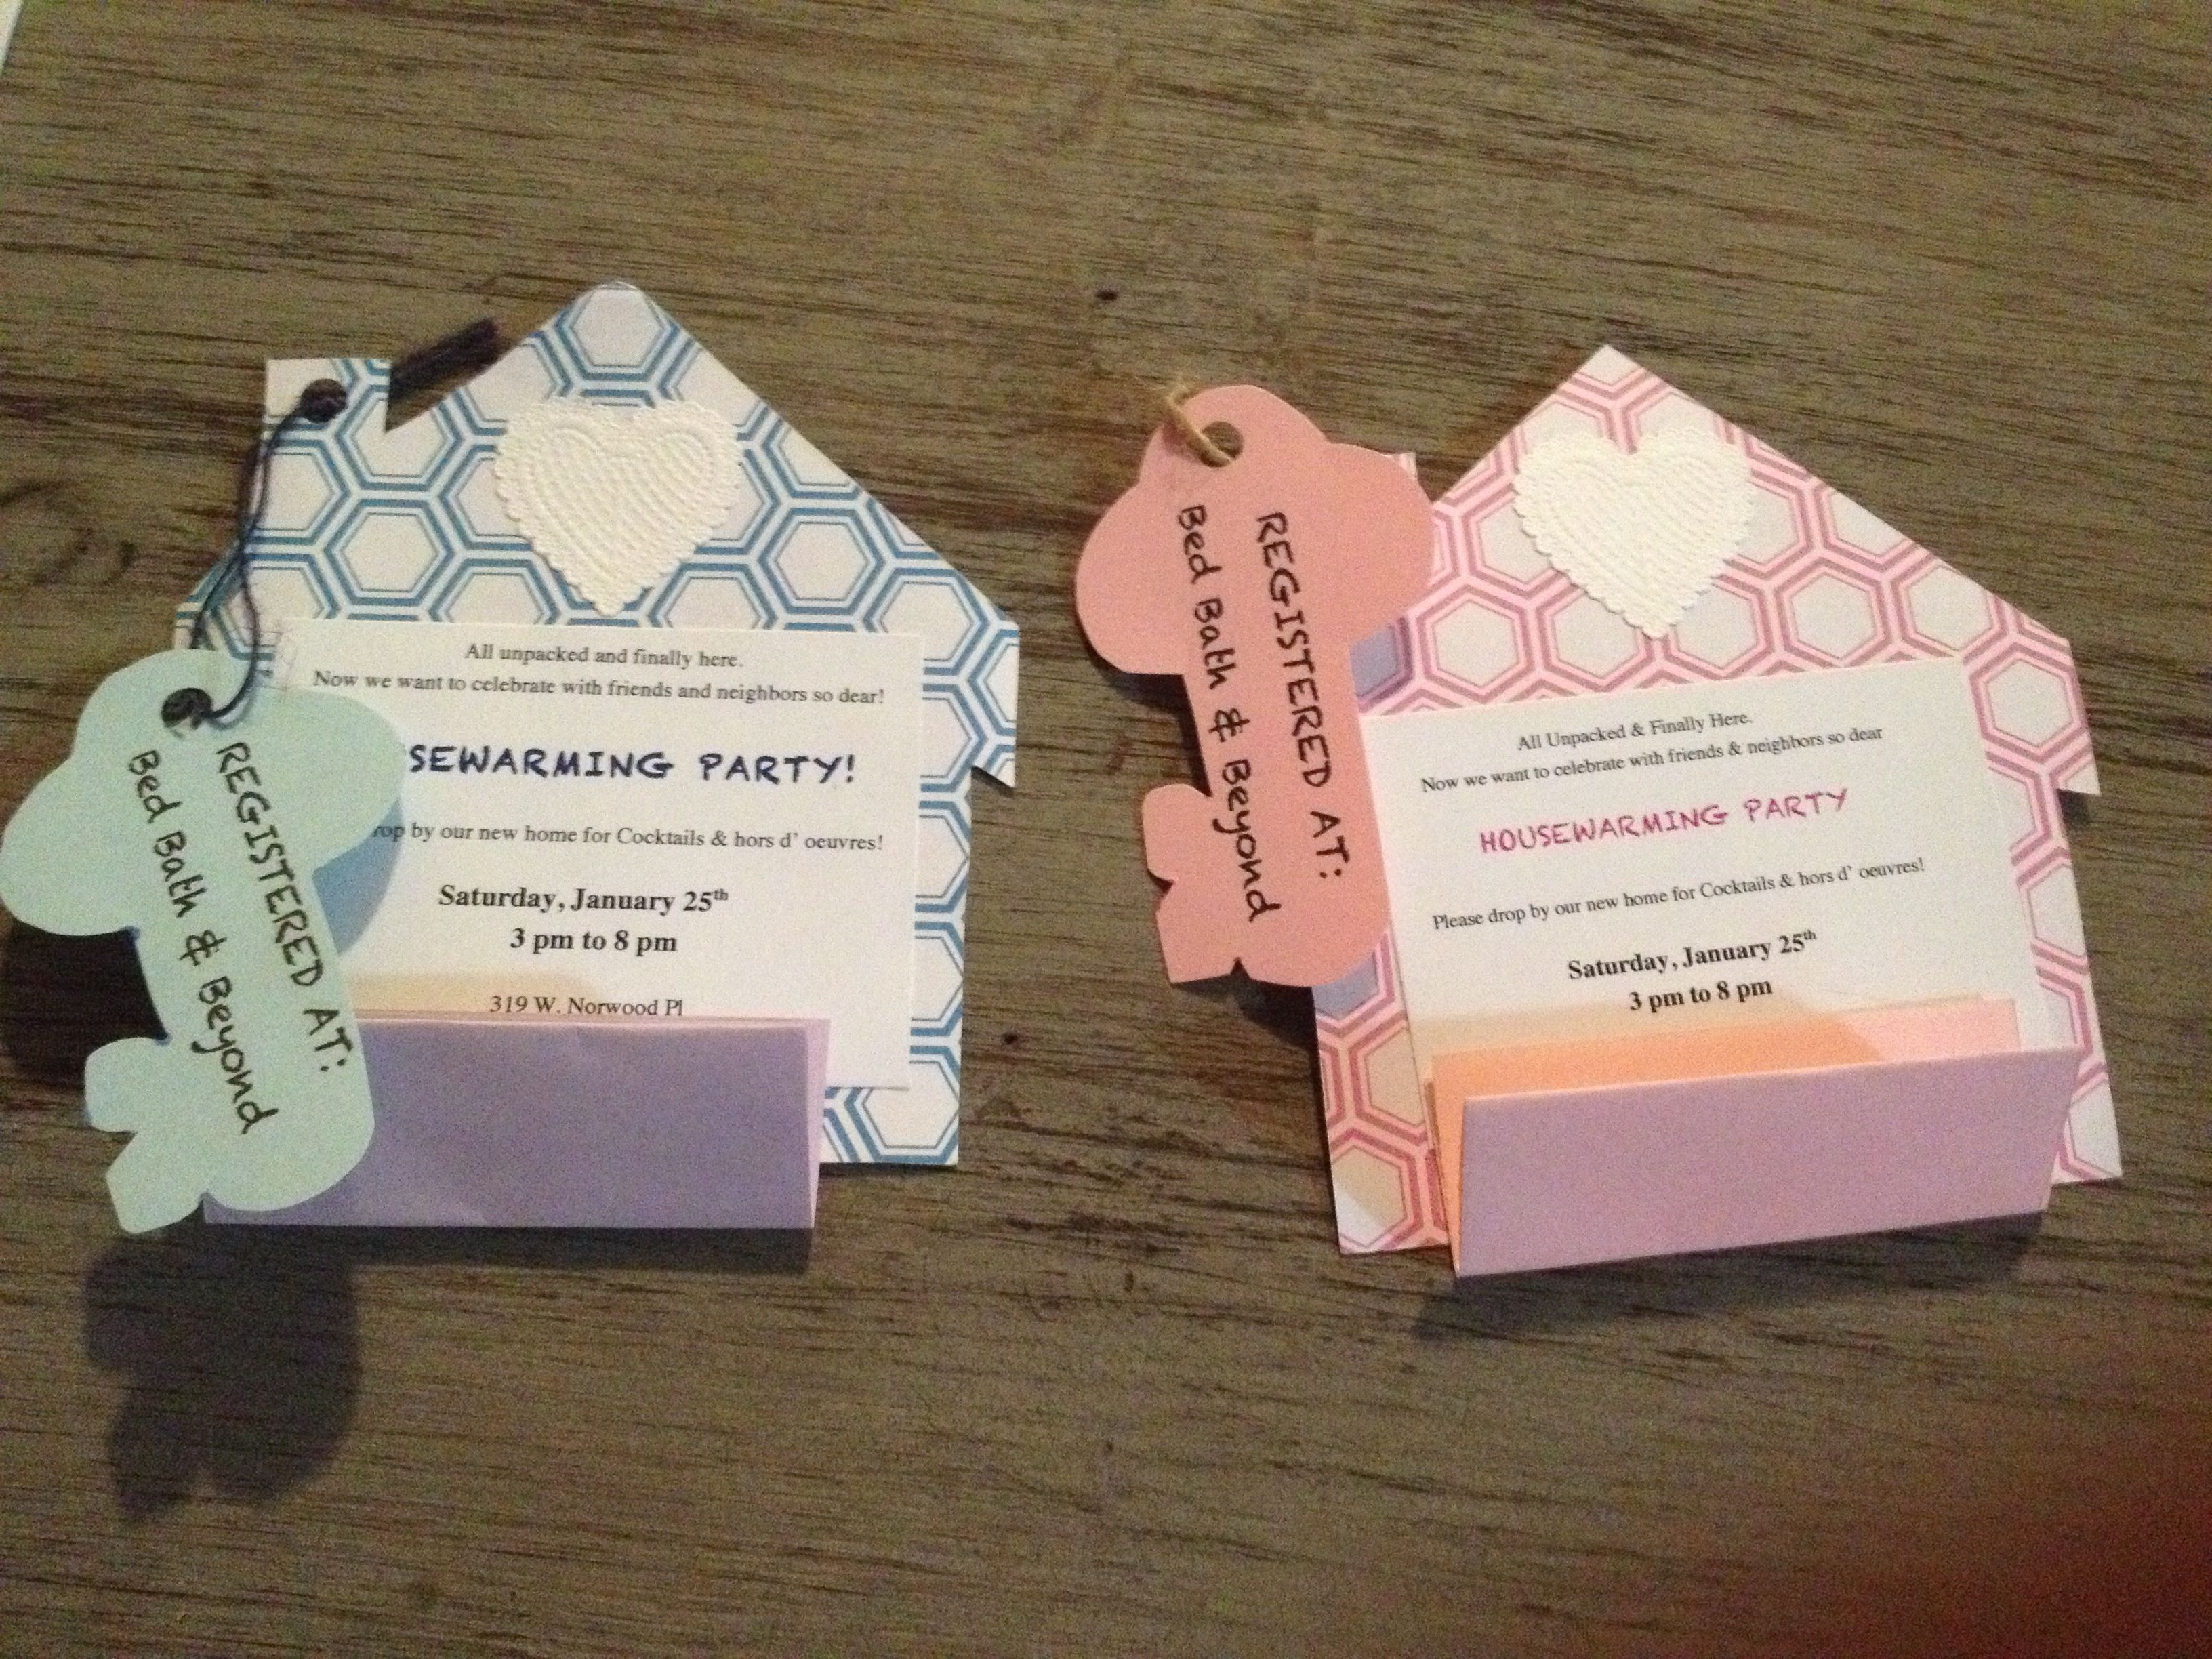 House warming Invitations | House Warming Party | Pinterest | House